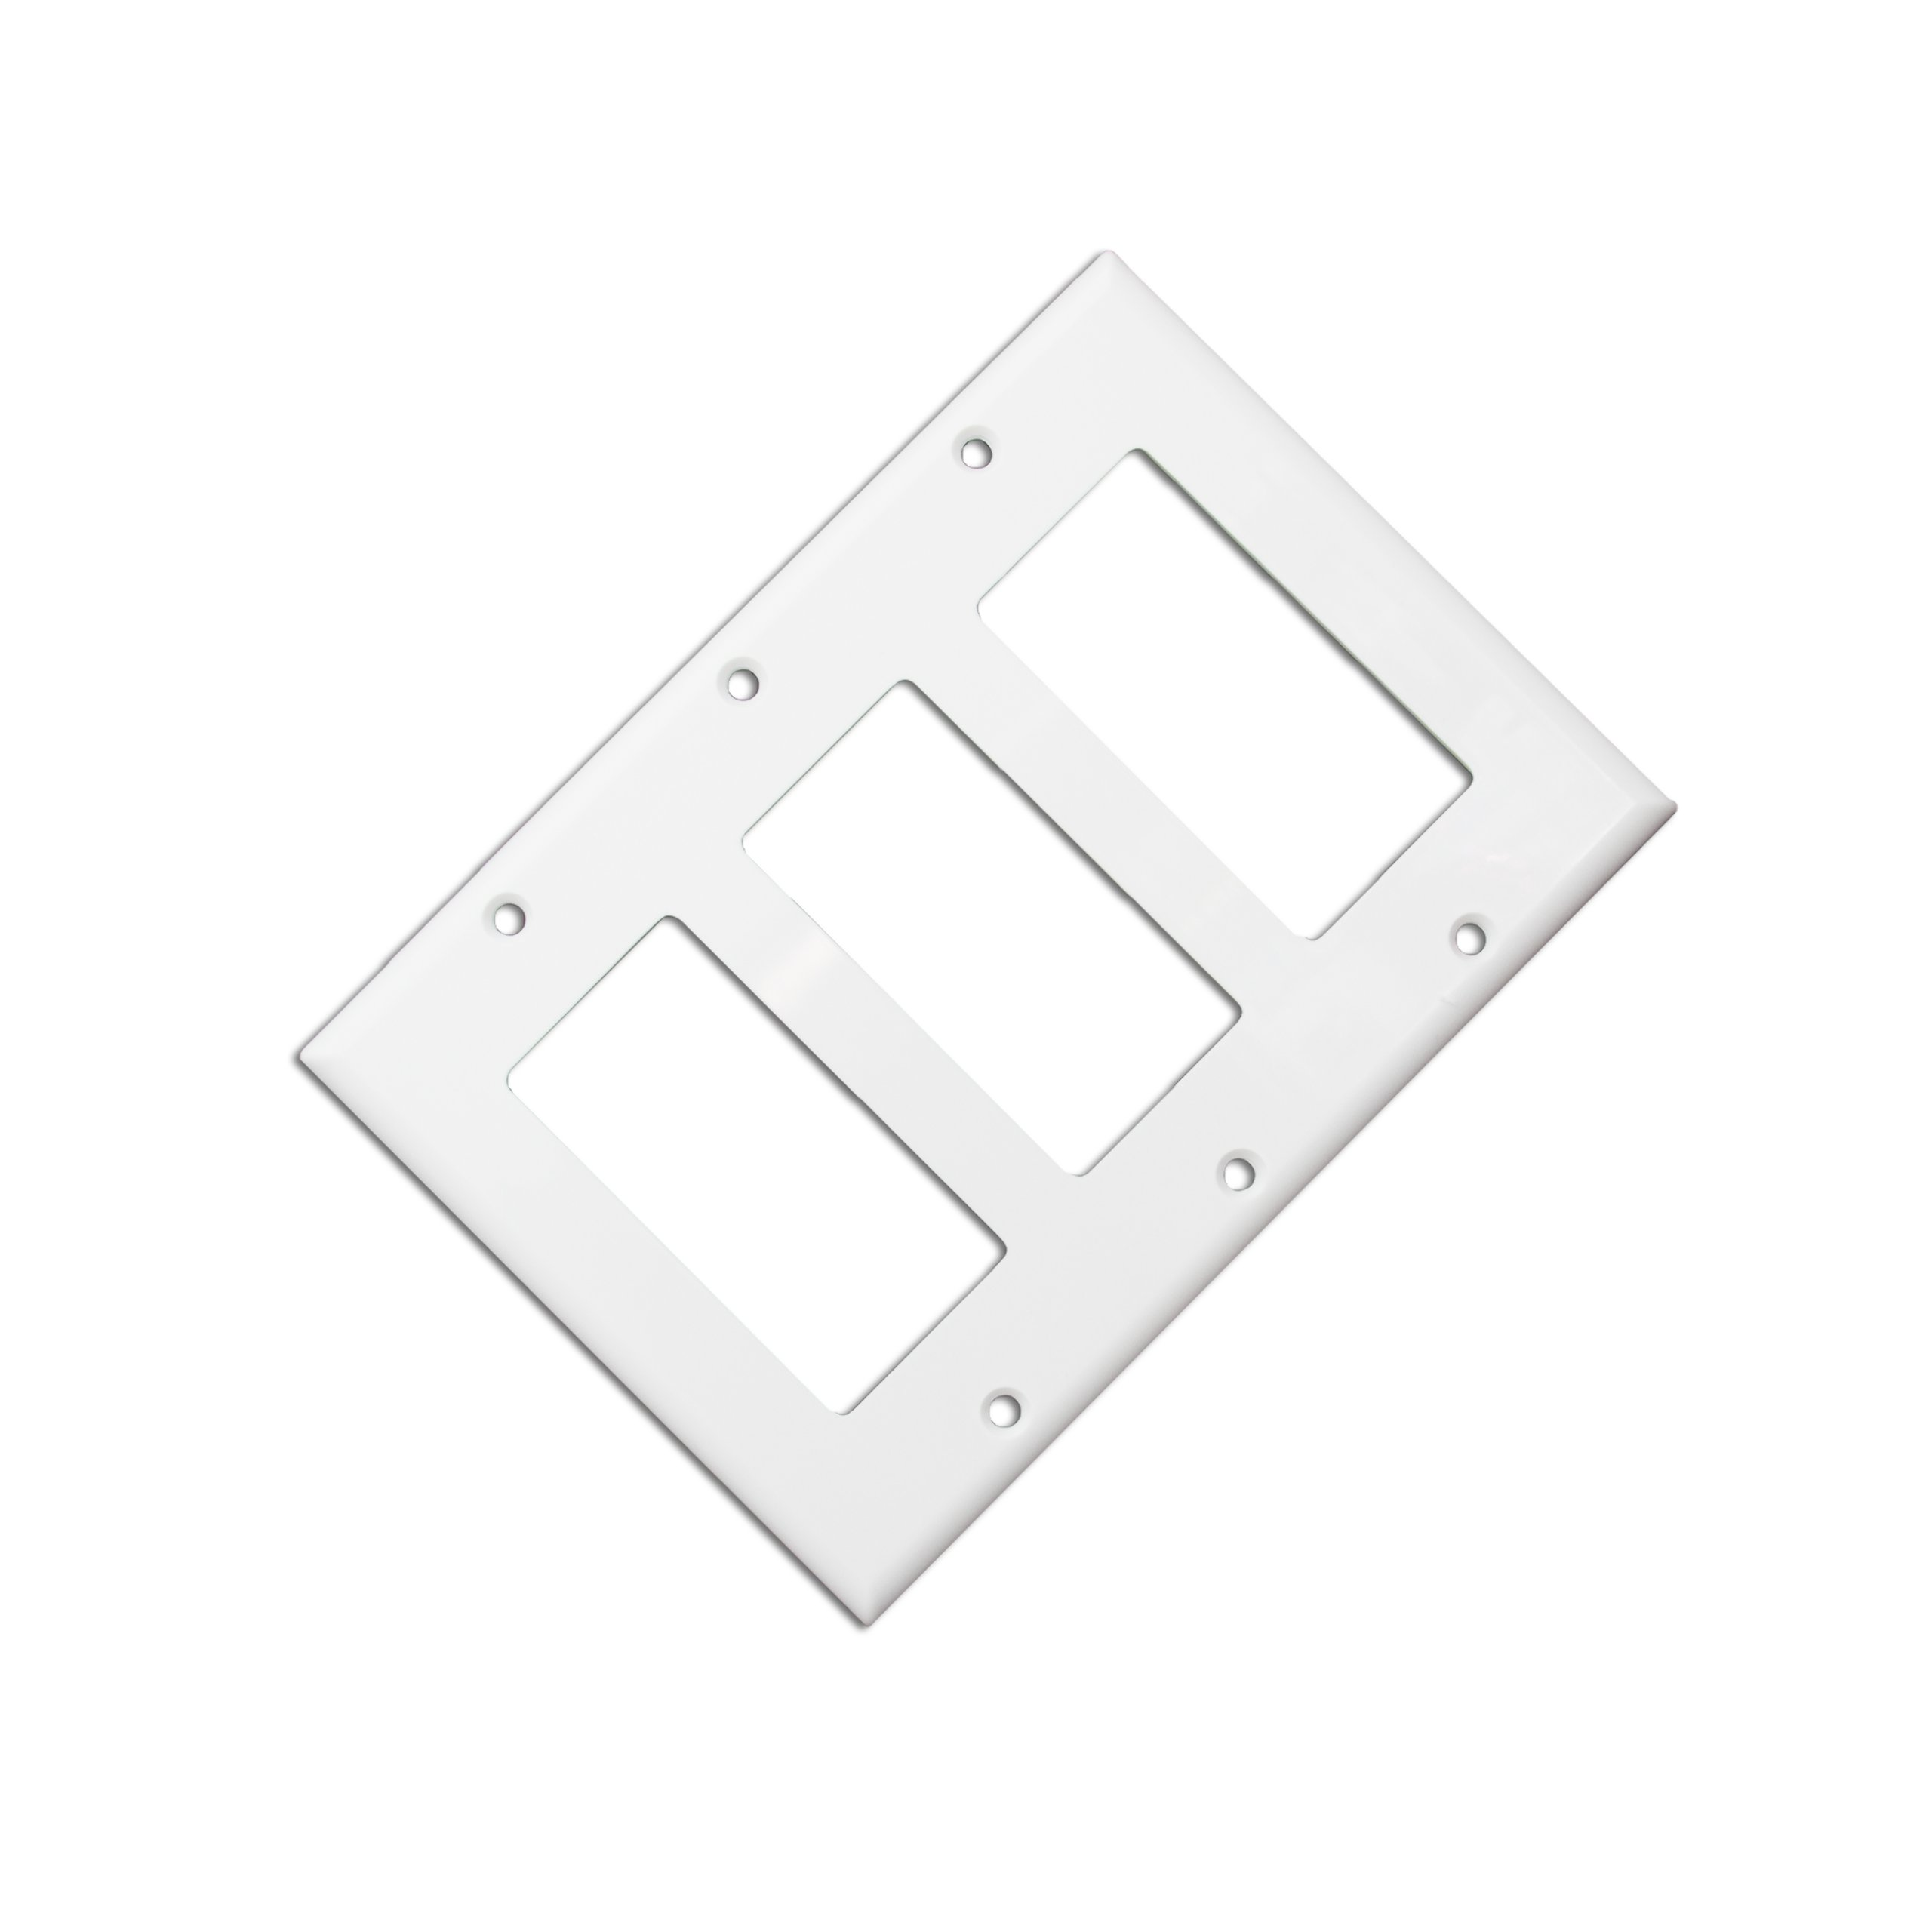 ACL Blank Decora, Triple Gang Wall Plate, White, 50 Pack by ACL